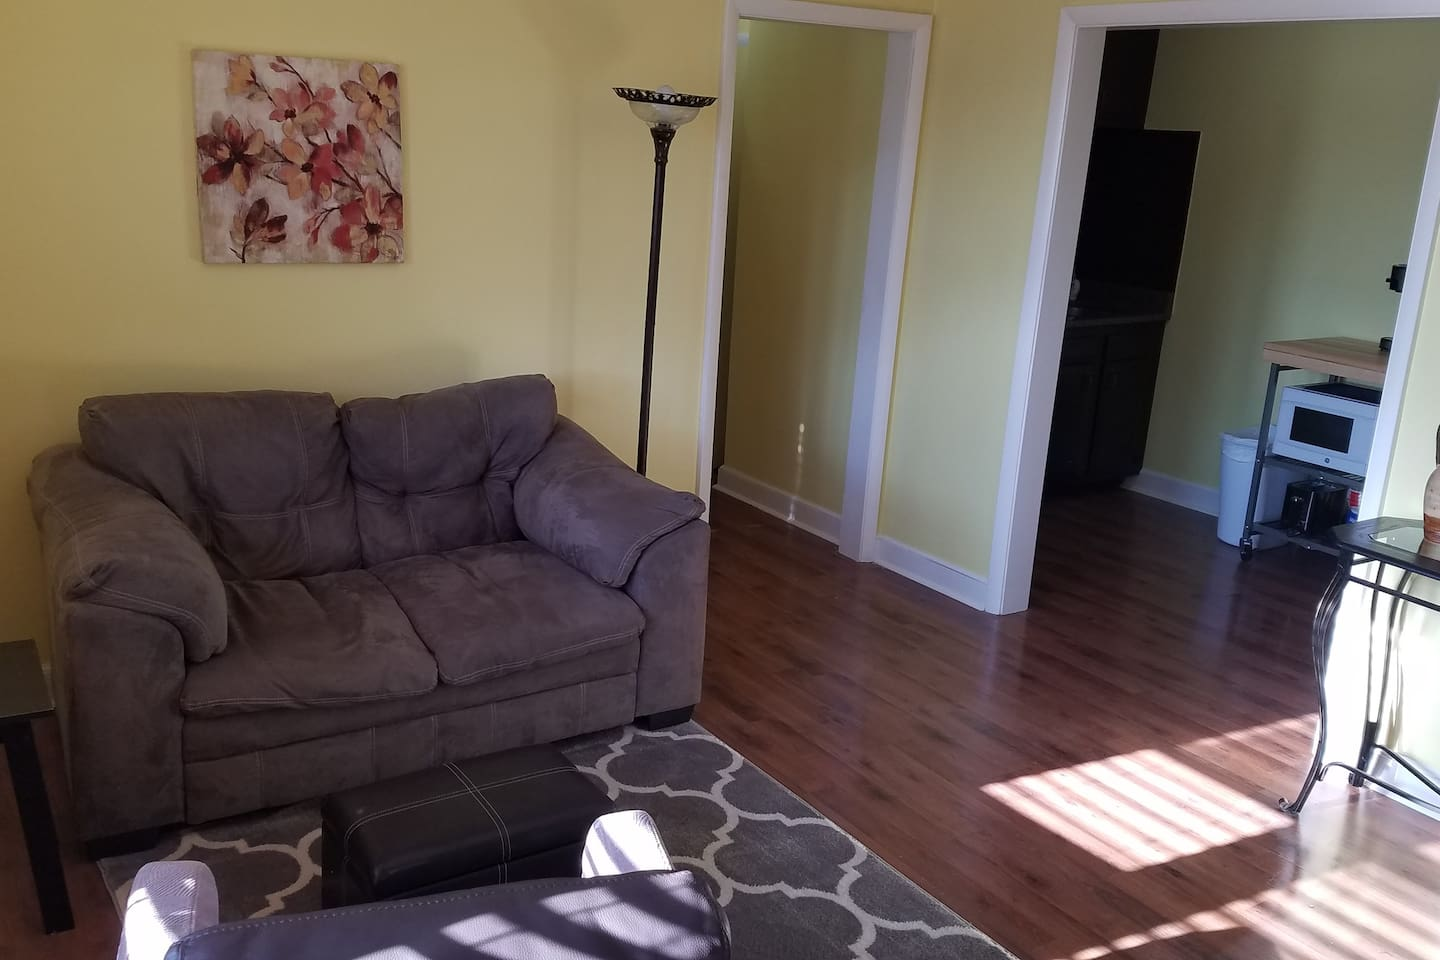 Two bedroom (queen and full size mattresses) private suite great for workforce.  Includes kitchen, living room, and bathroom.